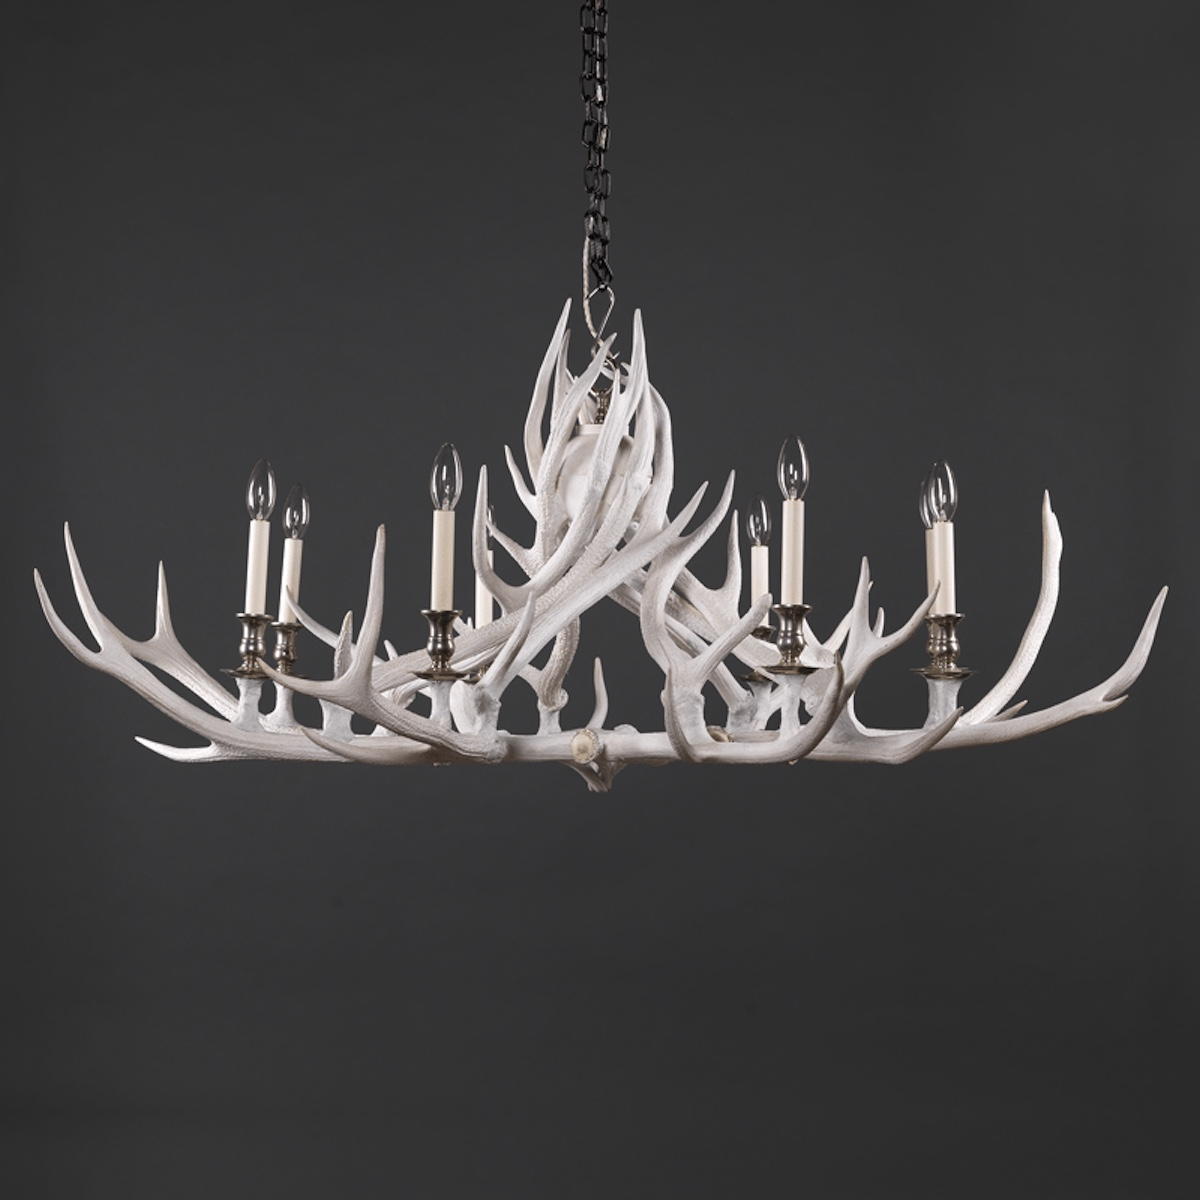 antler-chandelier-painted.jpg